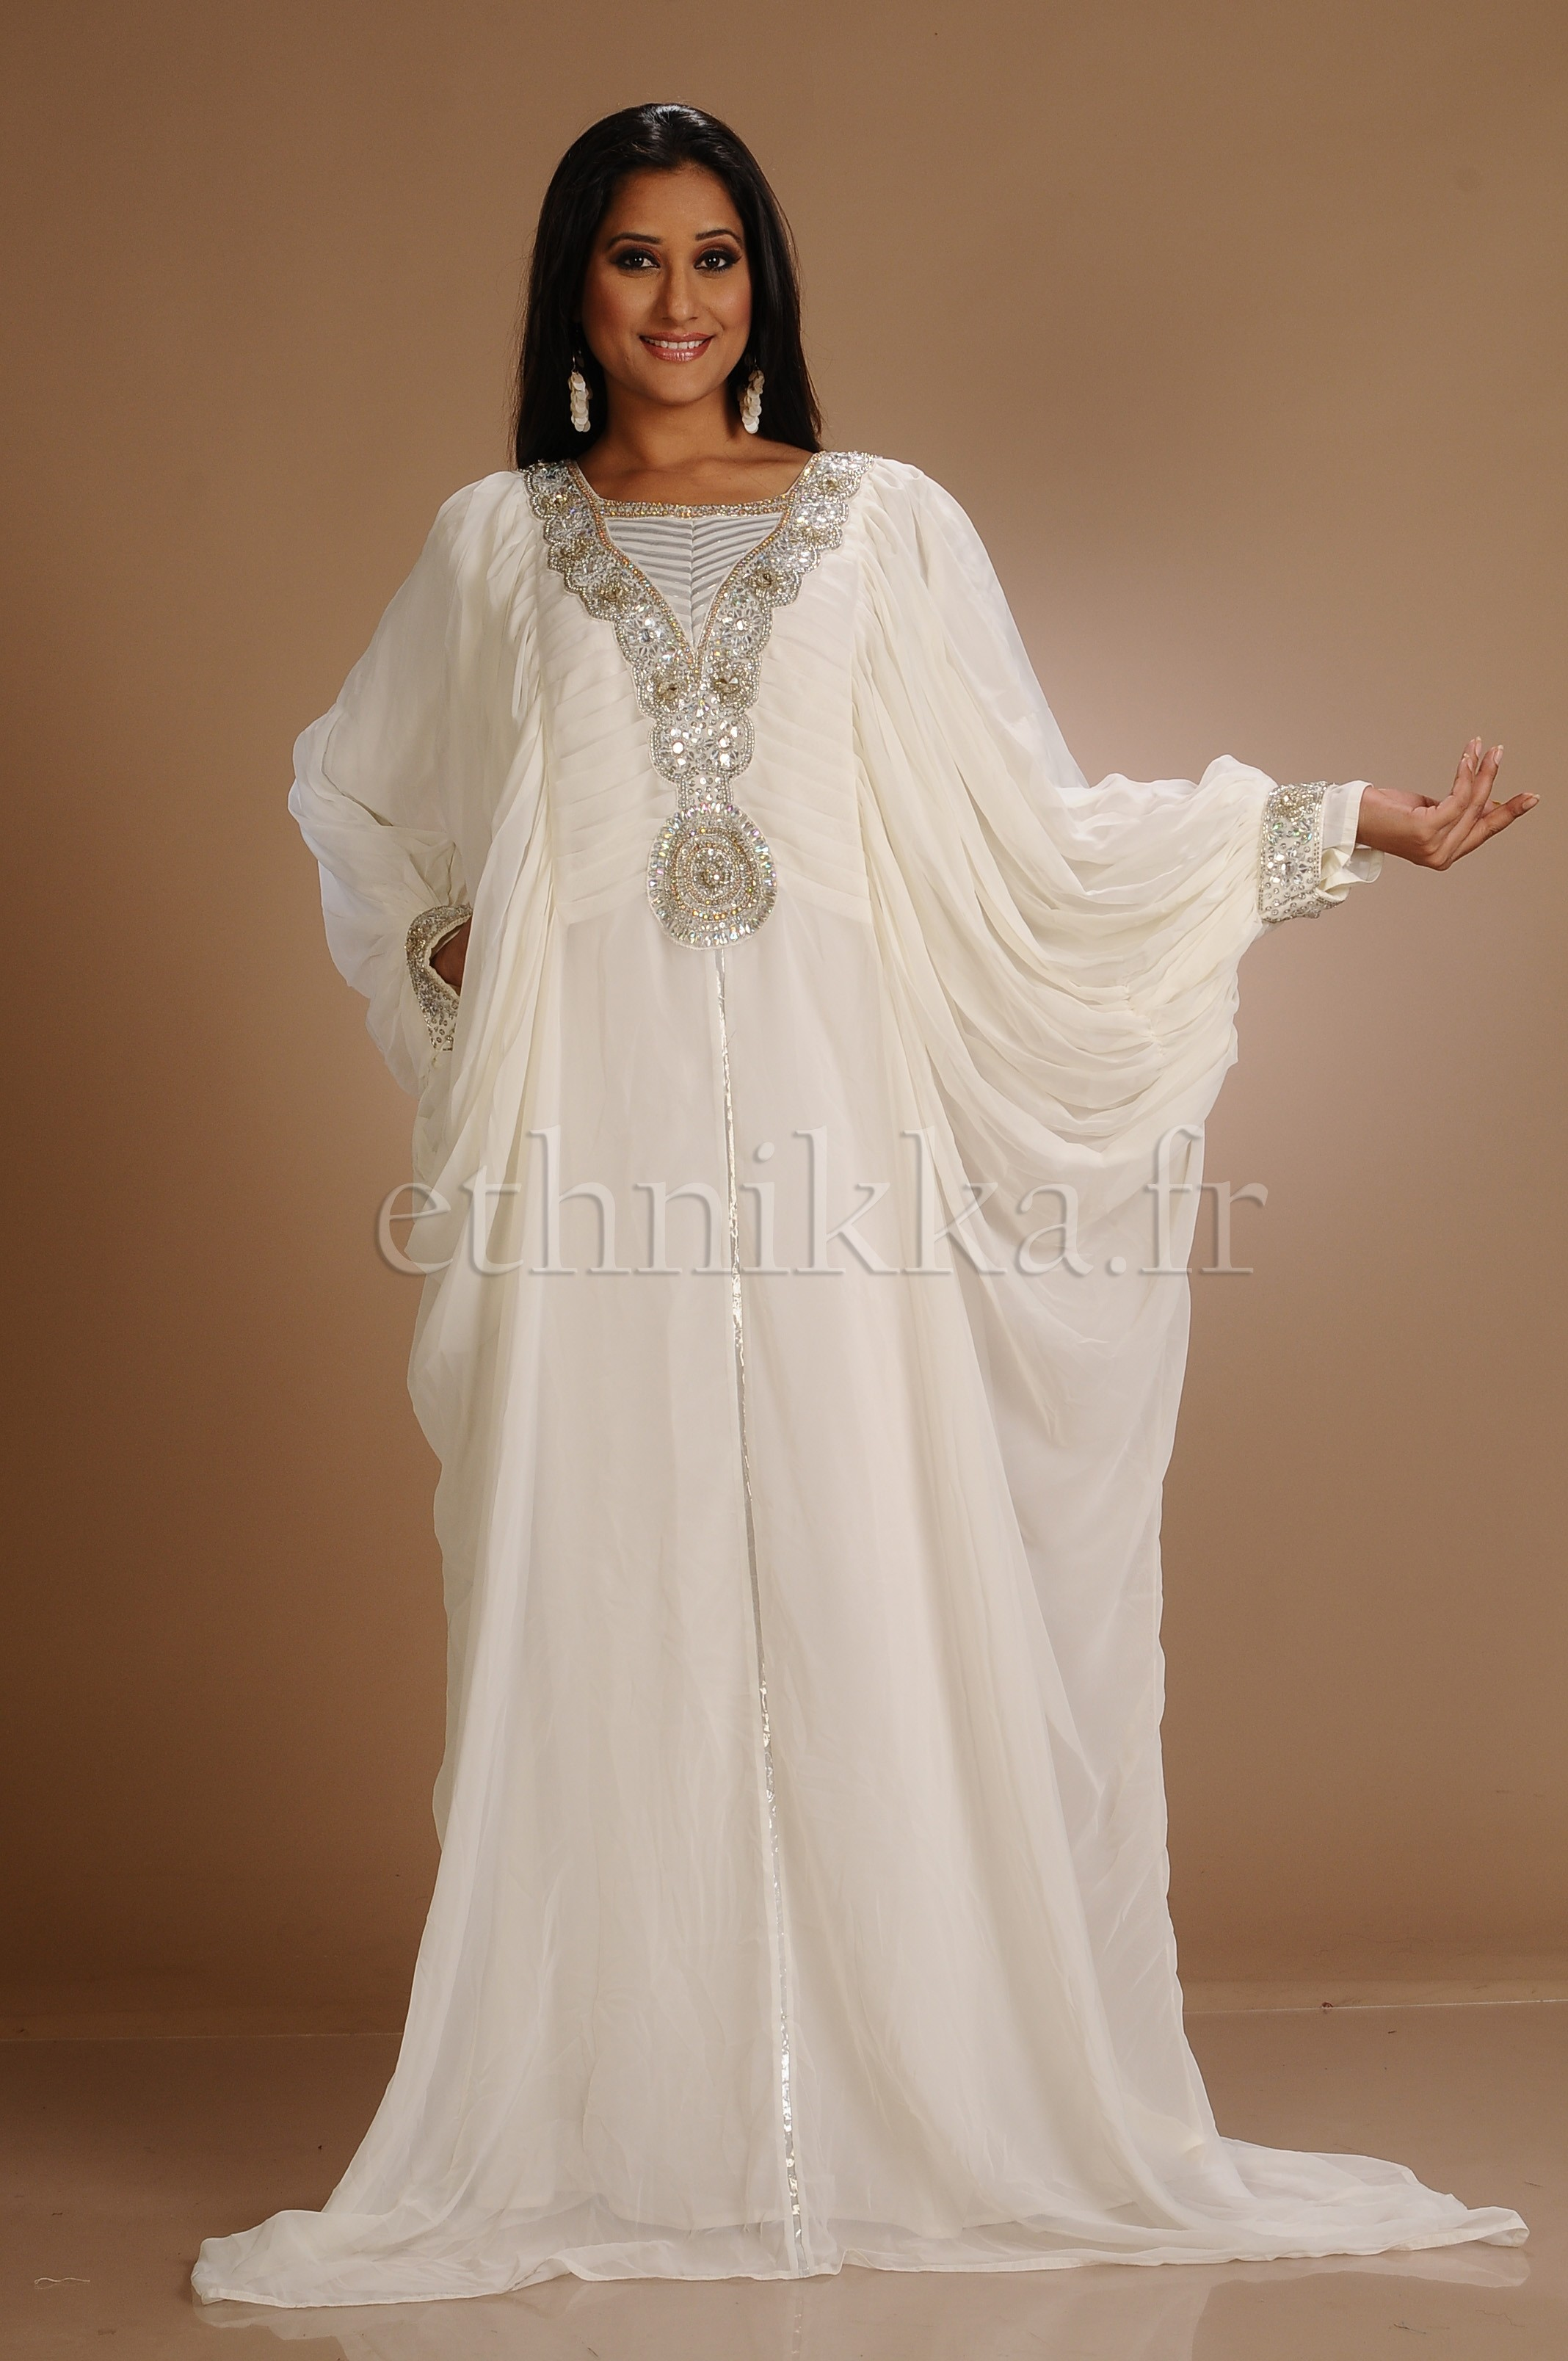 Robes orientales blanches